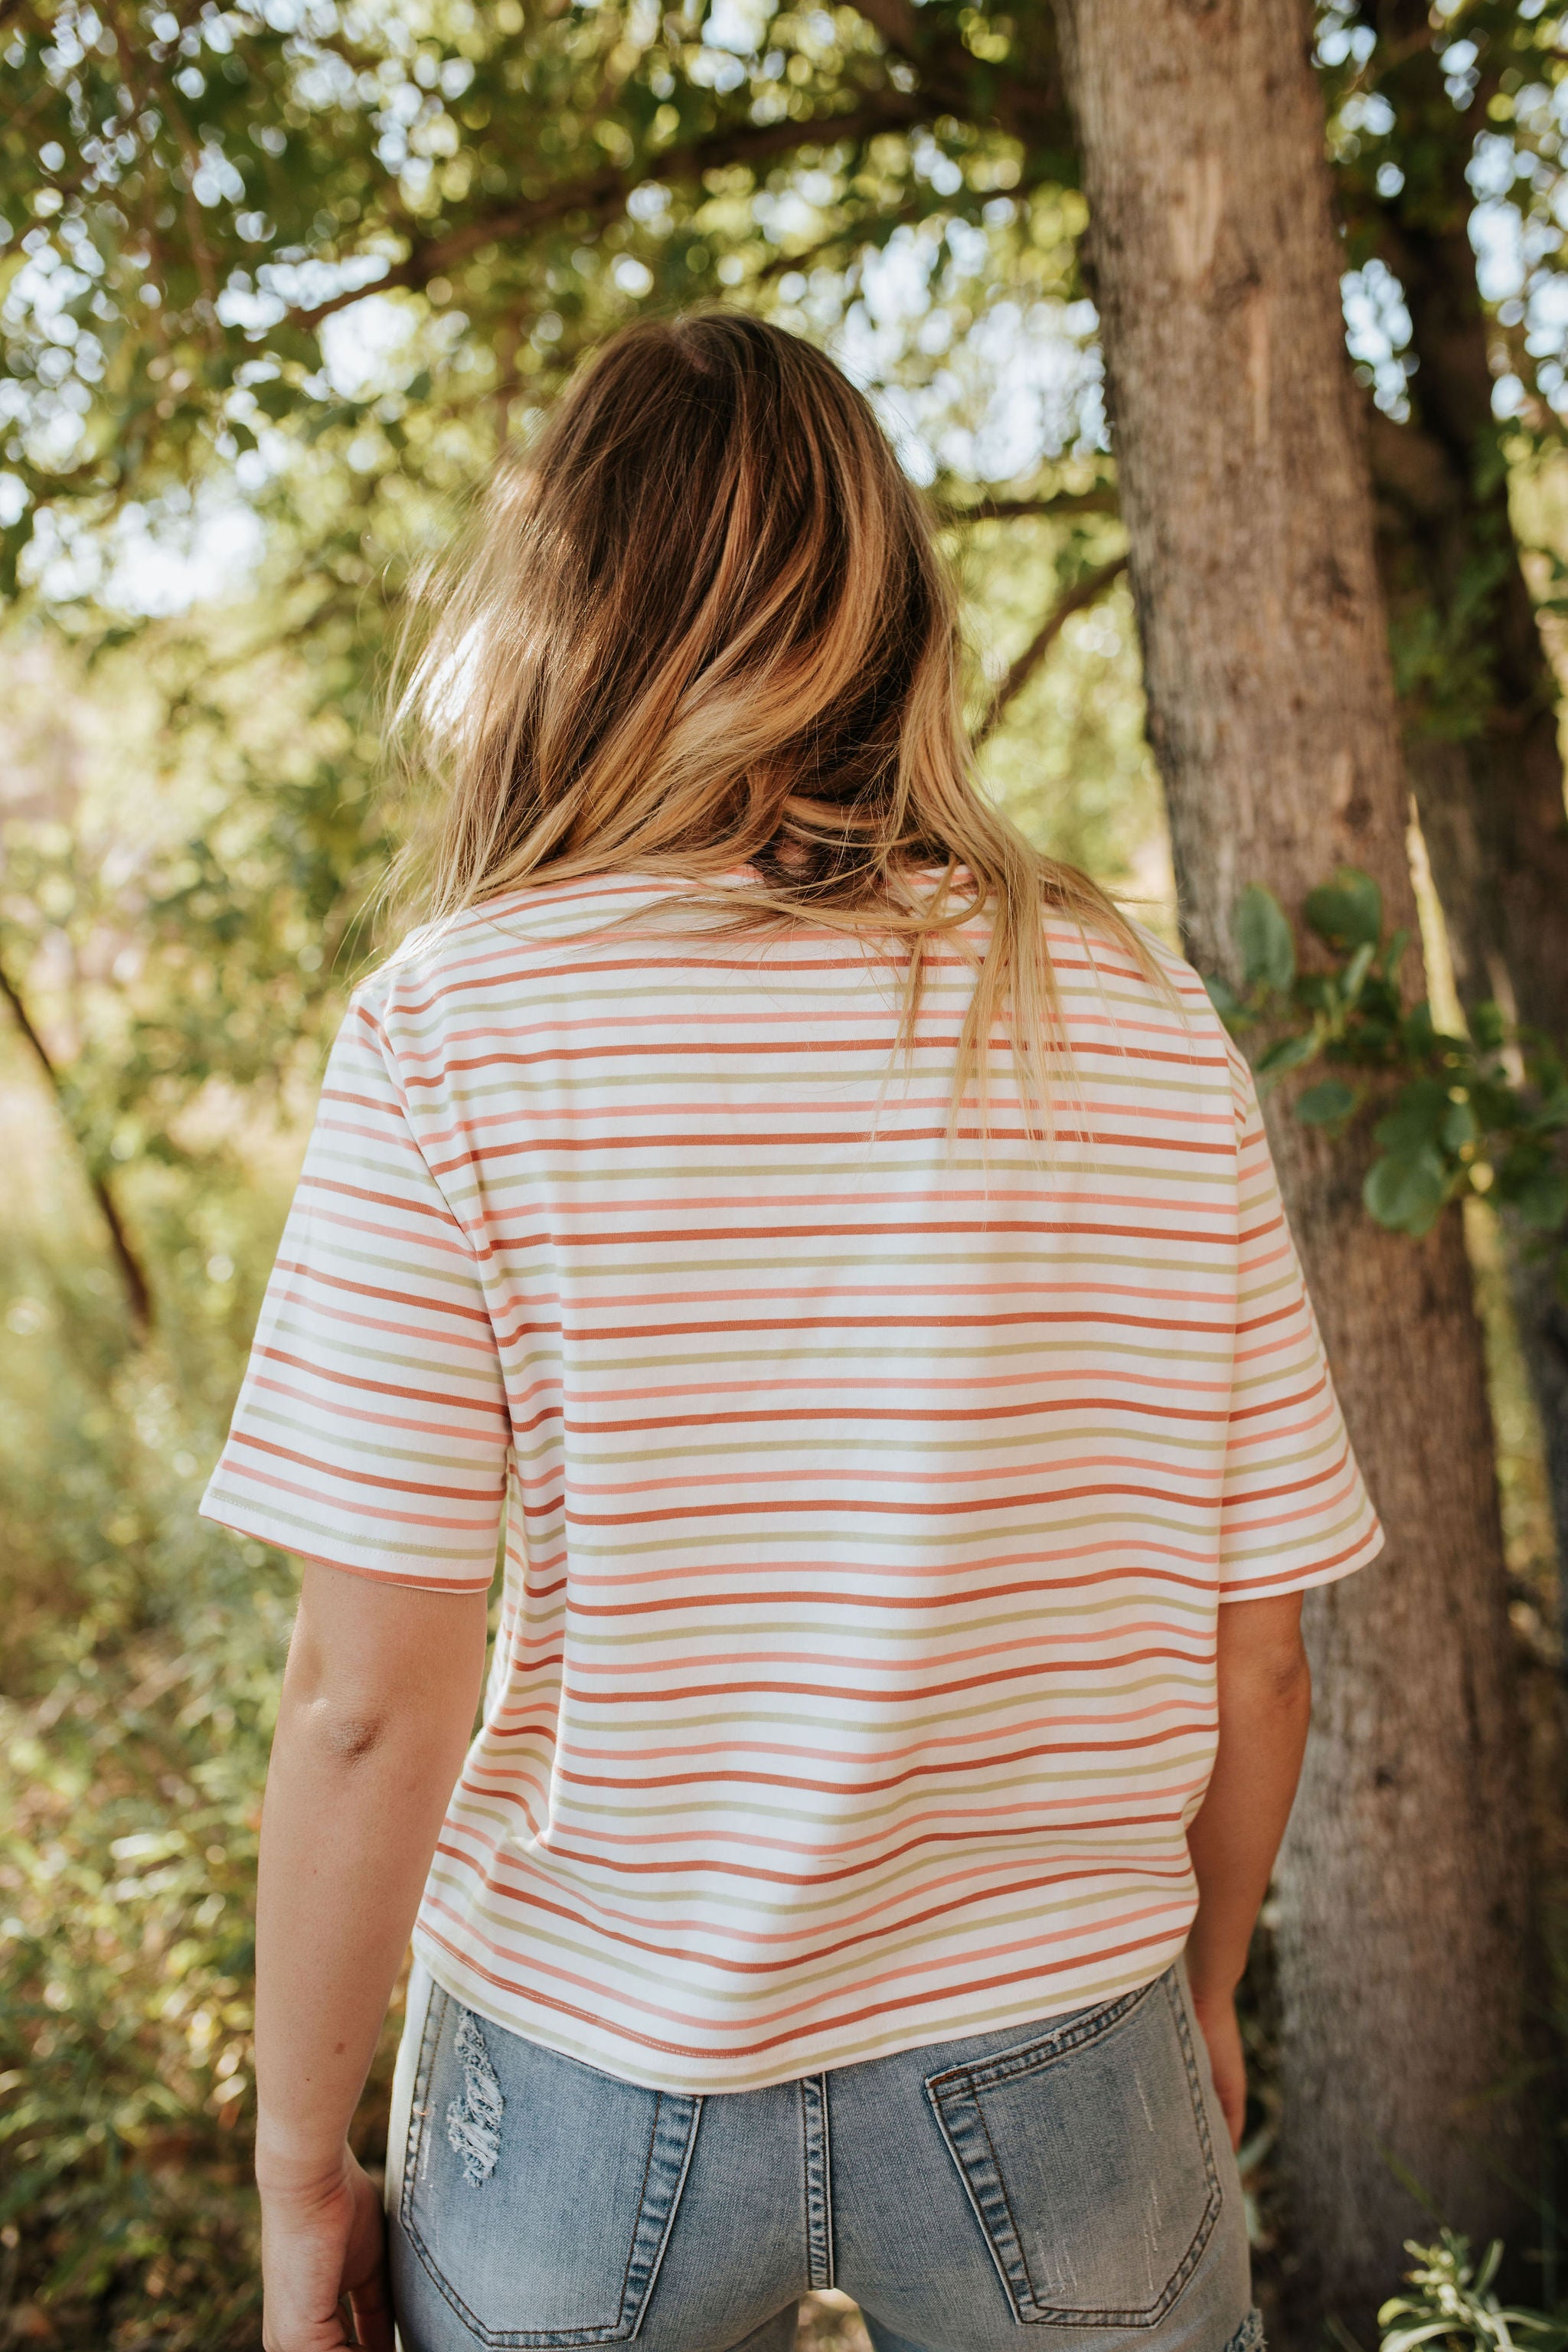 FREE AS A BIRD TOP IN MULTI STRIPE